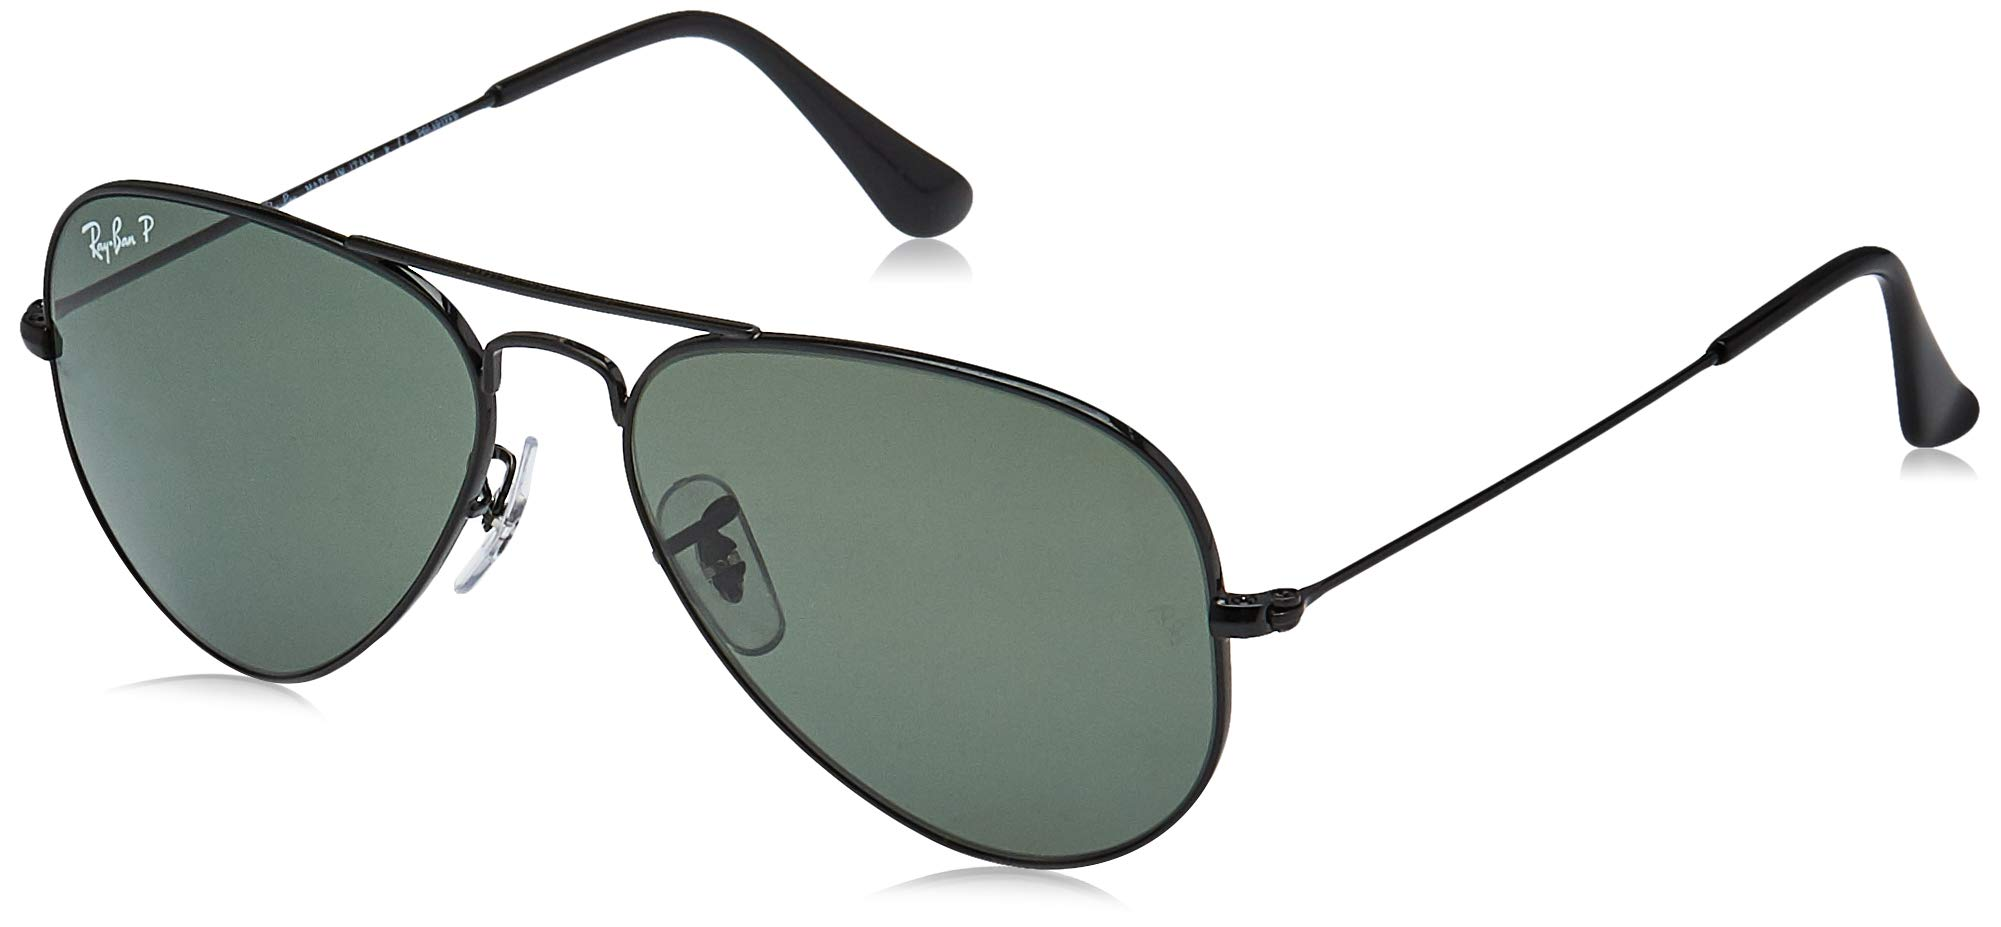 RAY-BAN RB3025 Aviator Large Metal Polarized Sunglasses, Black/Polarized Green, 55 mm by RAY-BAN